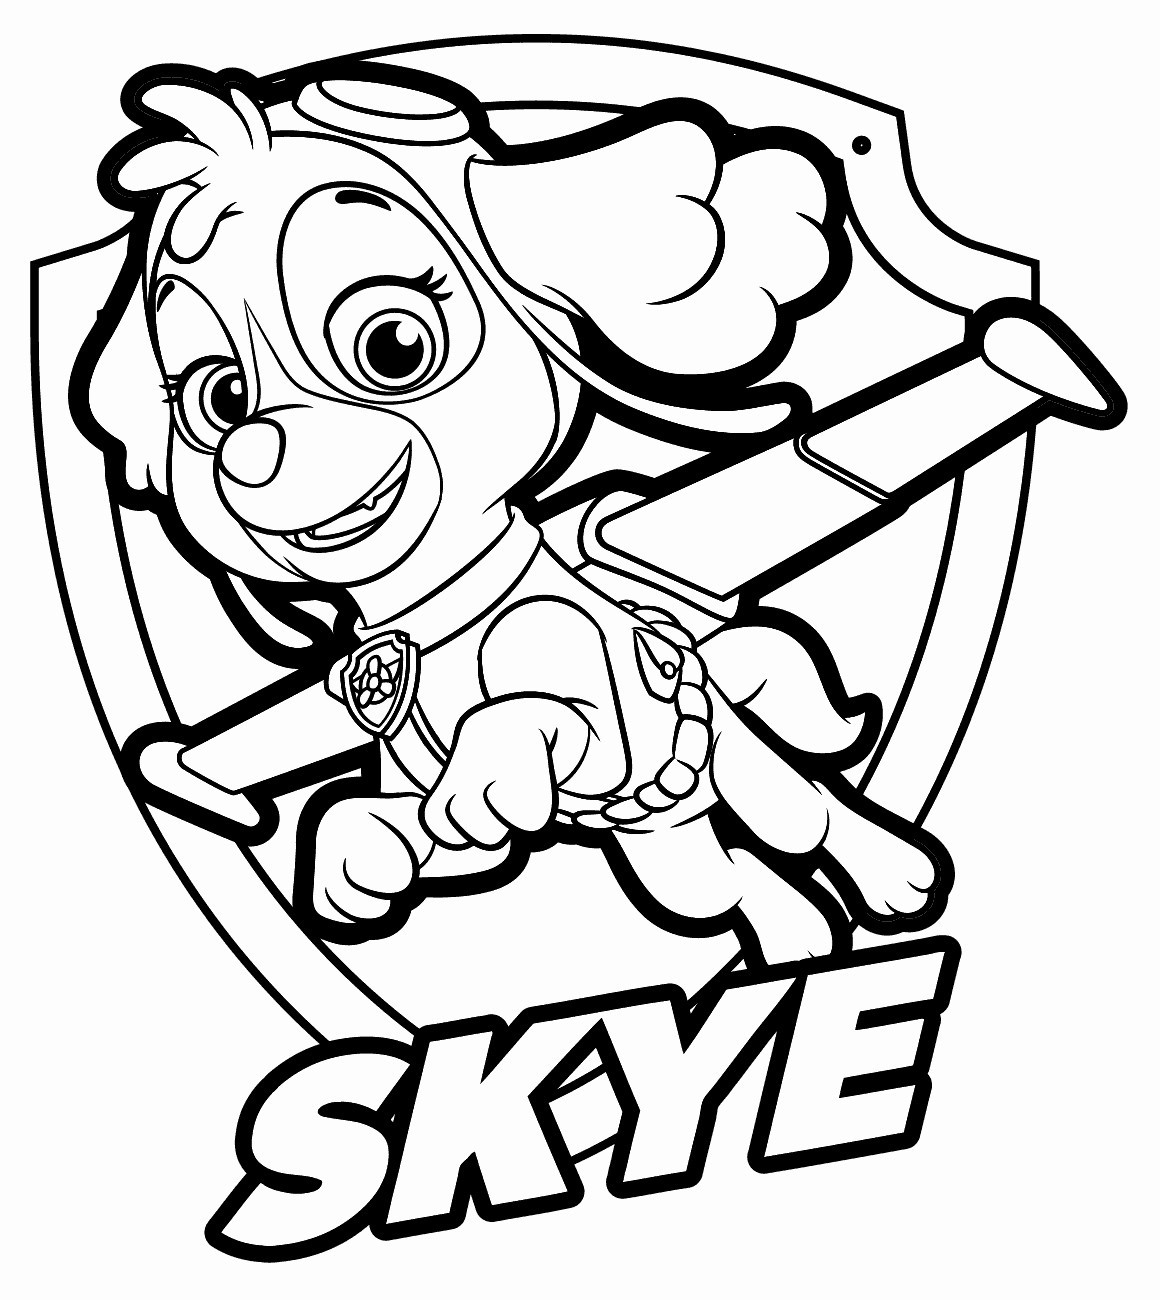 paw patrol free coloring 15 best paw patrol coloring pages visual arts ideas coloring patrol paw free